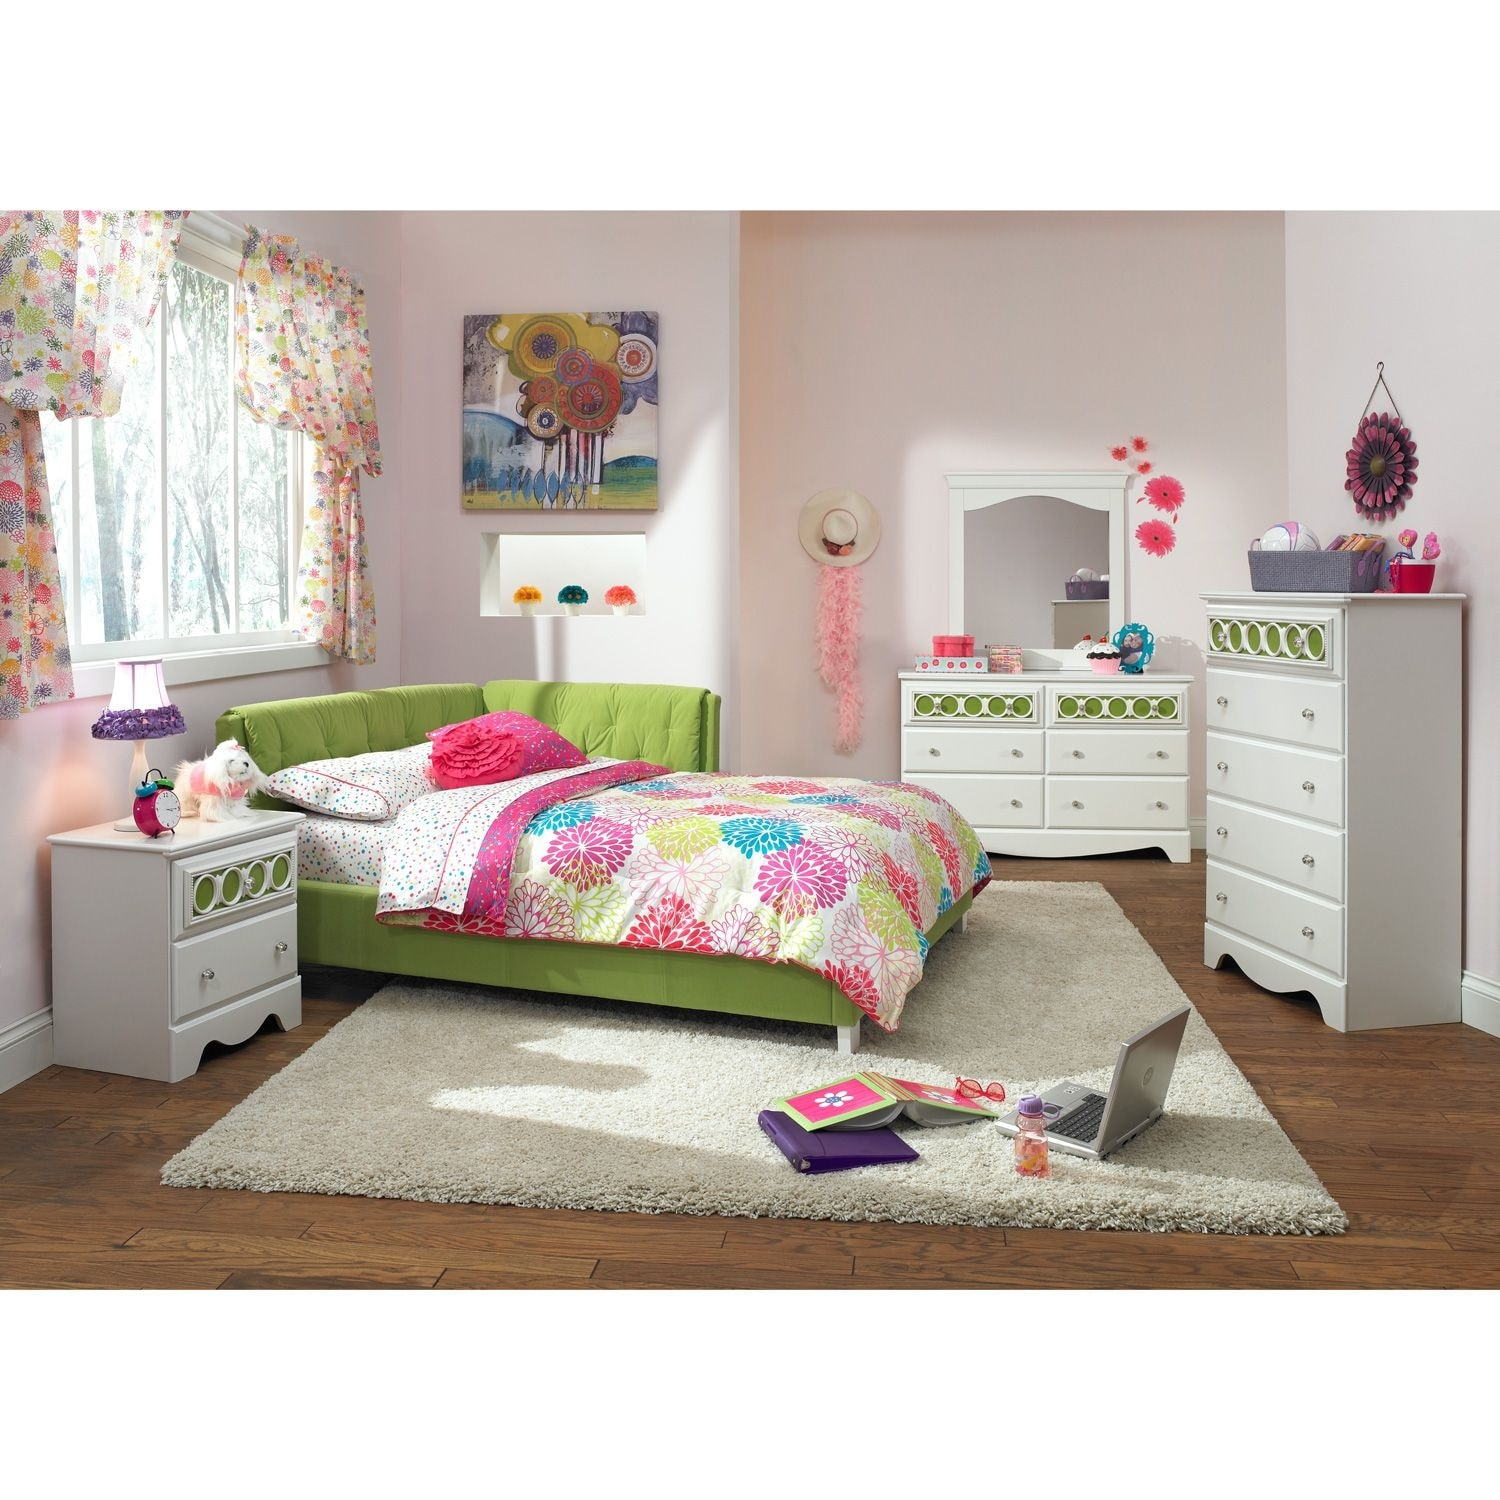 product specifications designer corner beds double bed details of view proddetail